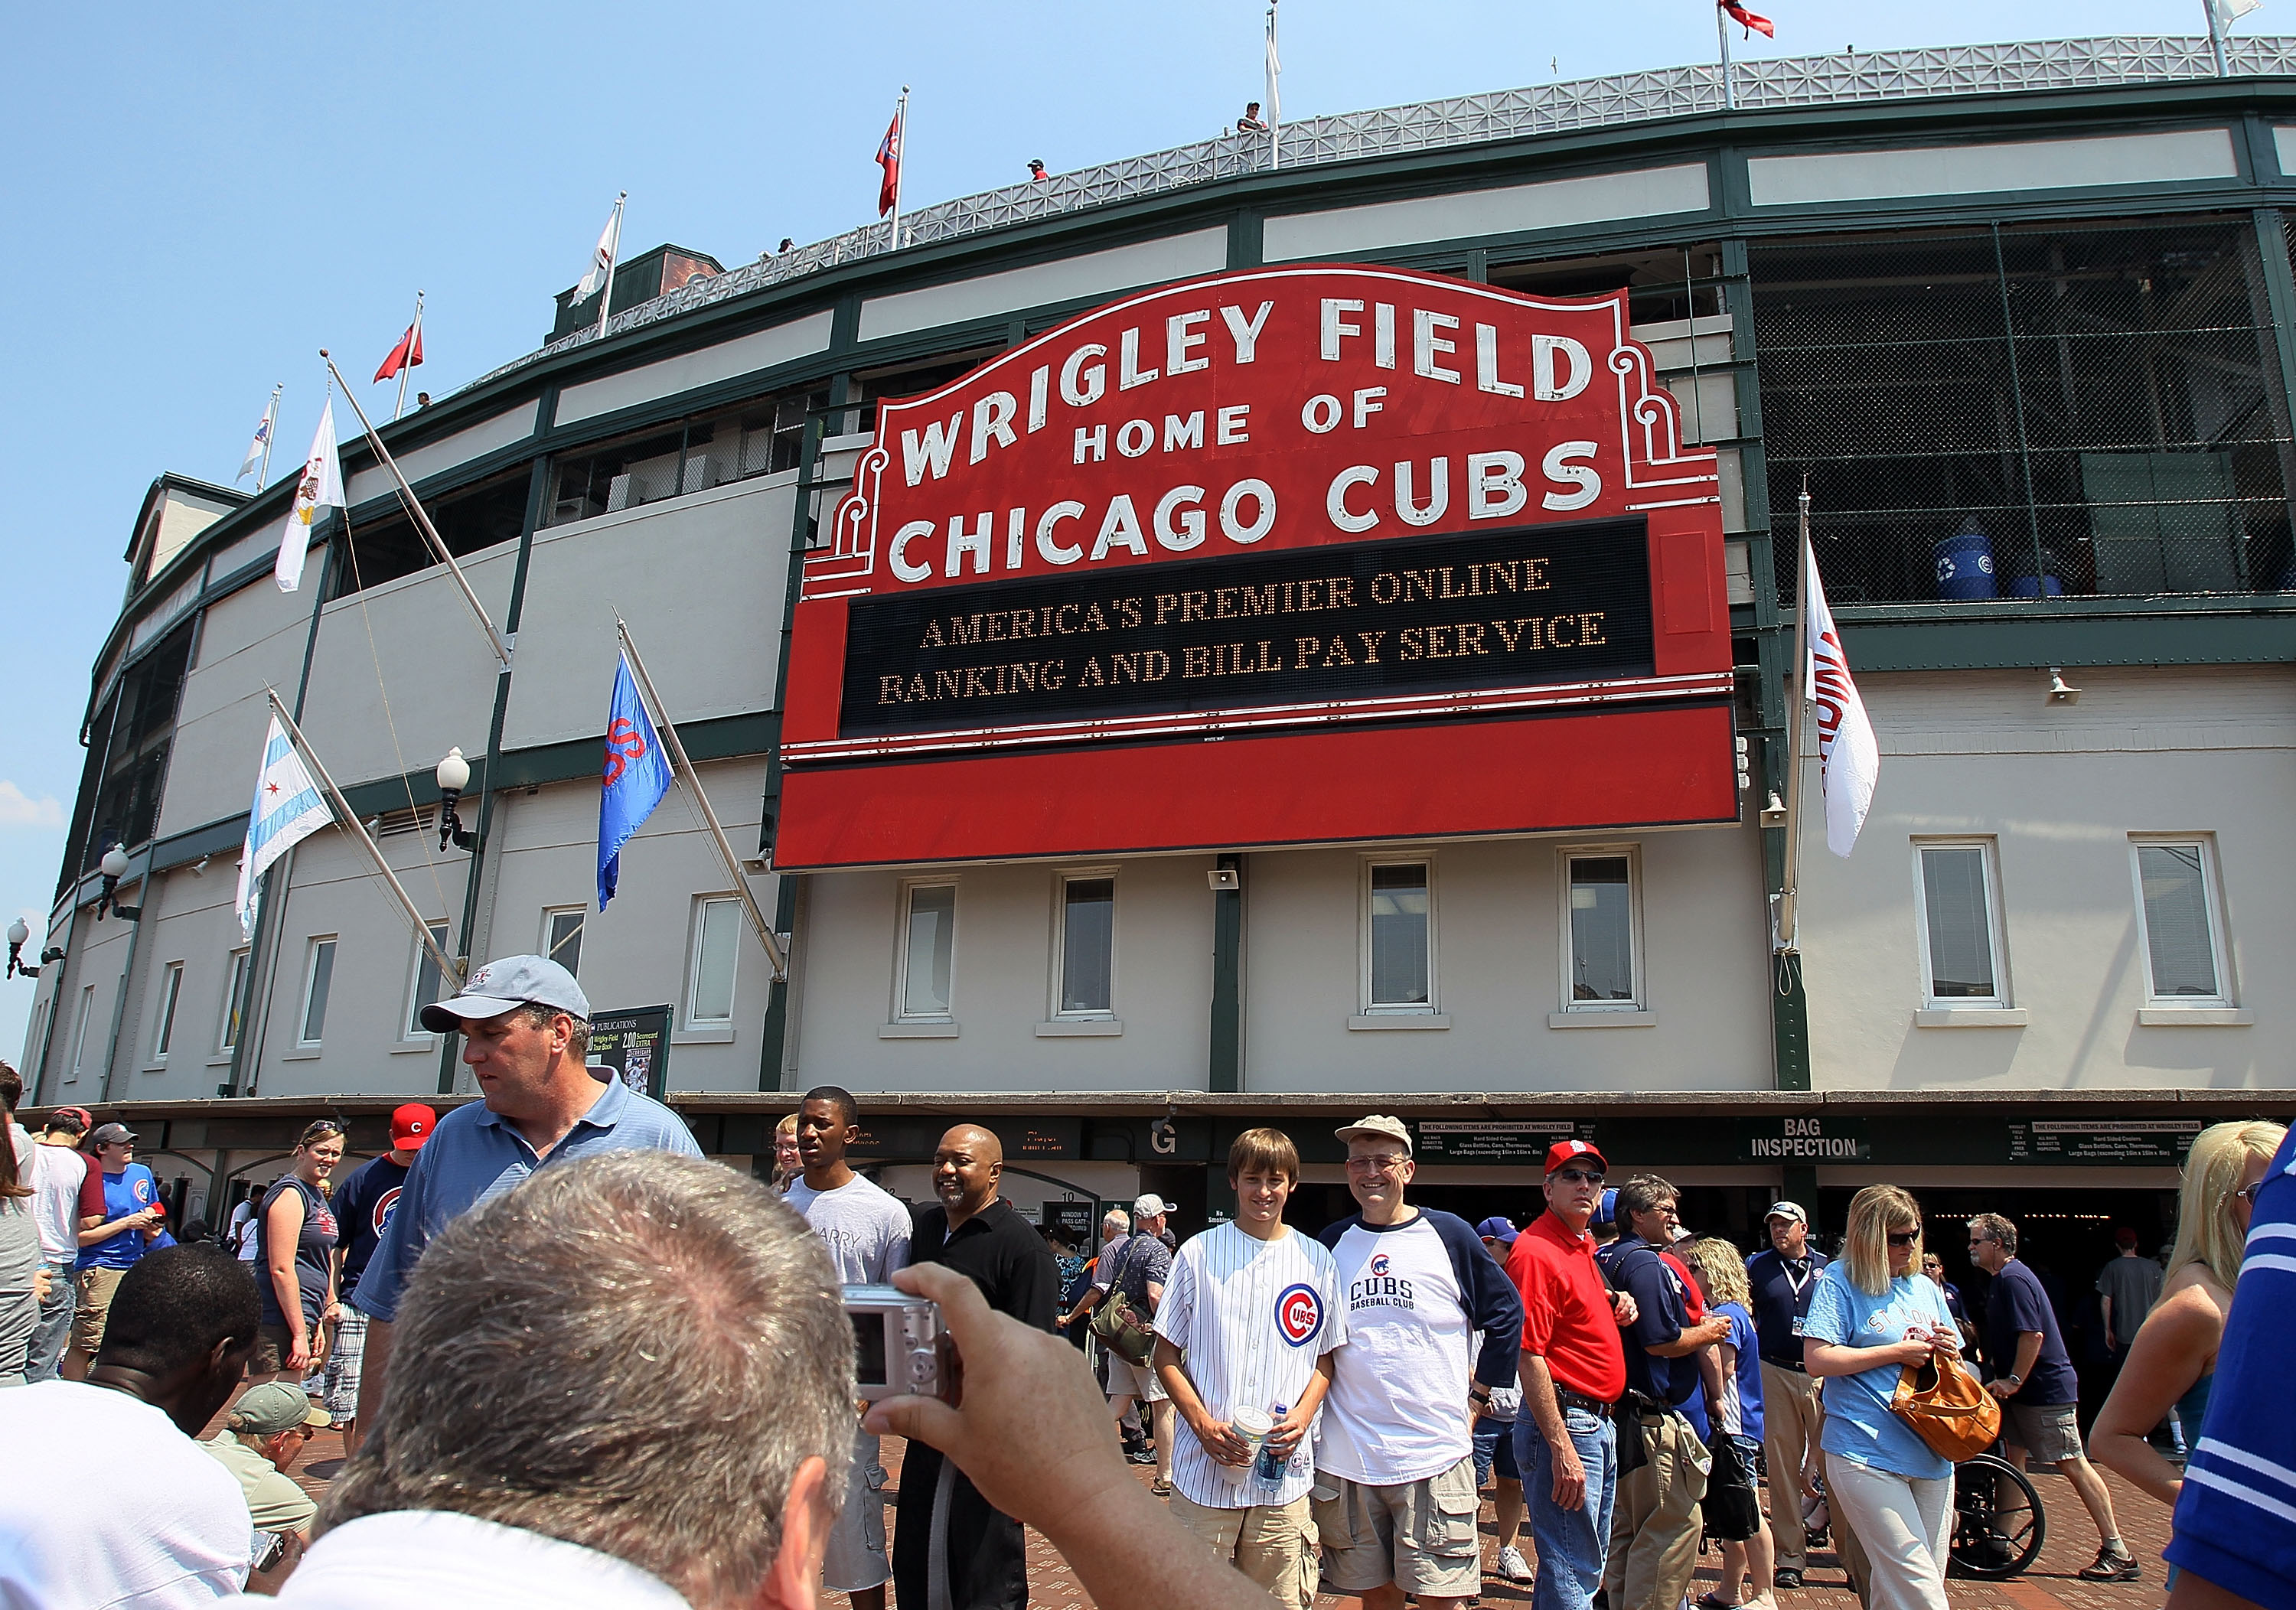 CHICAGO - MAY 30:  Fans arrive for the game between the St. Louis Cardinals and the Chicago Cubs on May 30, 2010 at Wrigley Field in Chicago, Illinois.  (Photo by Jim McIsaac/Getty Images)